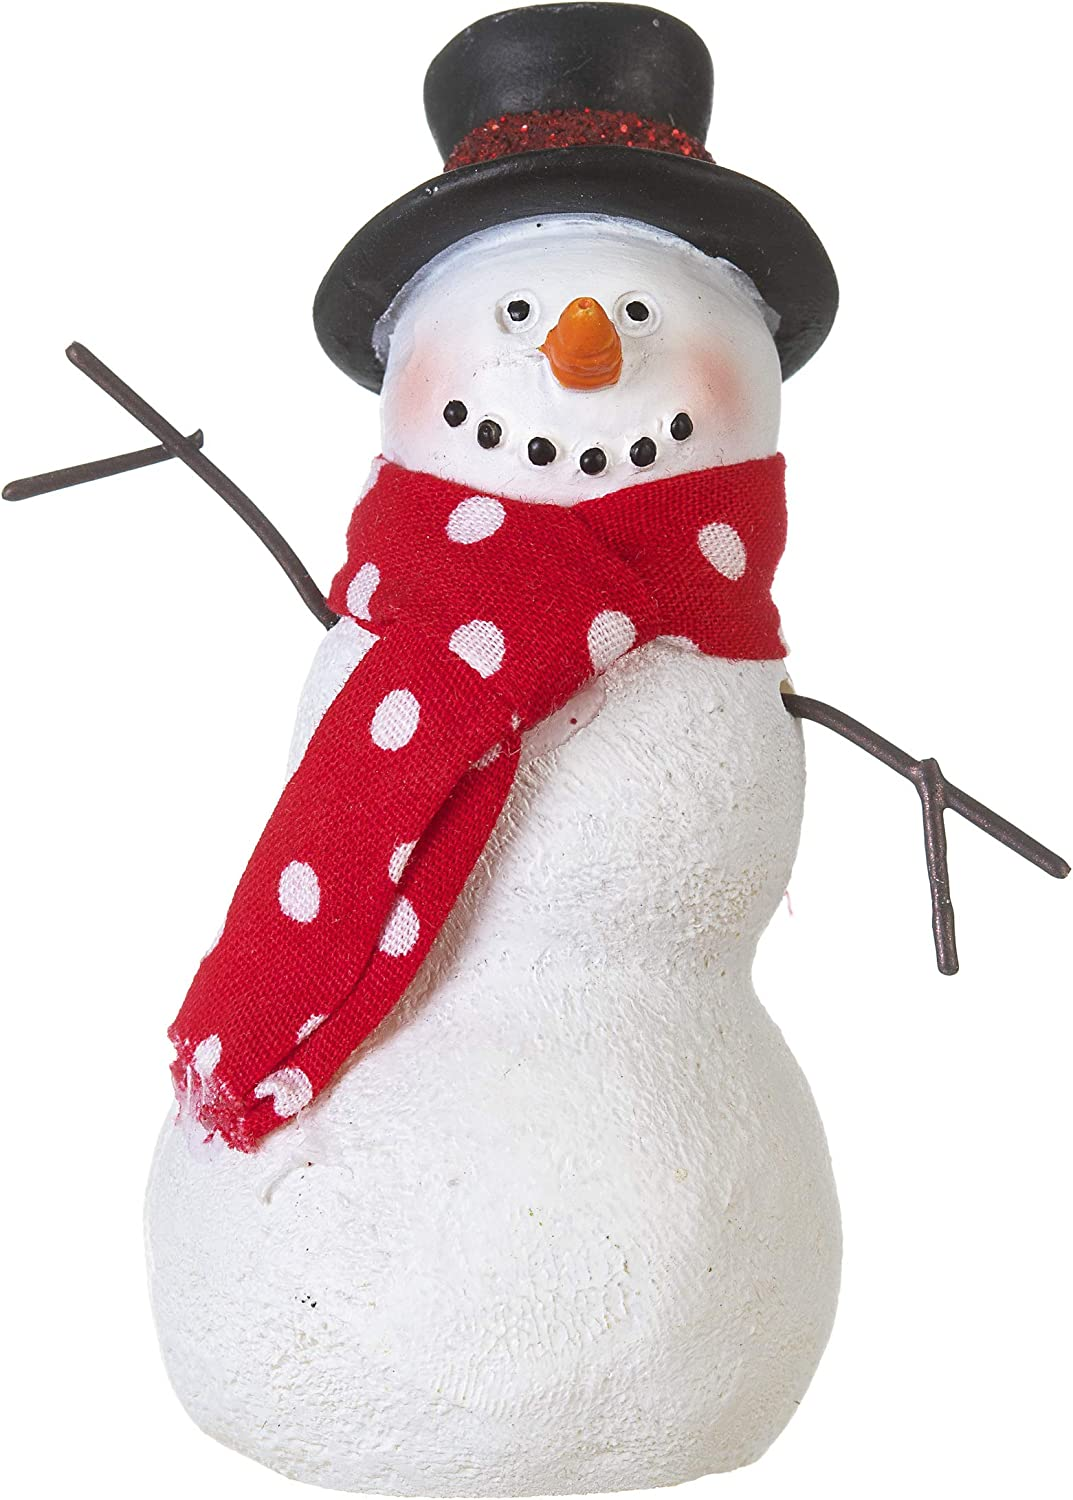 Darice Mini Snowman with Scarf: Christmas, 2 x 3 inches, Multicolor